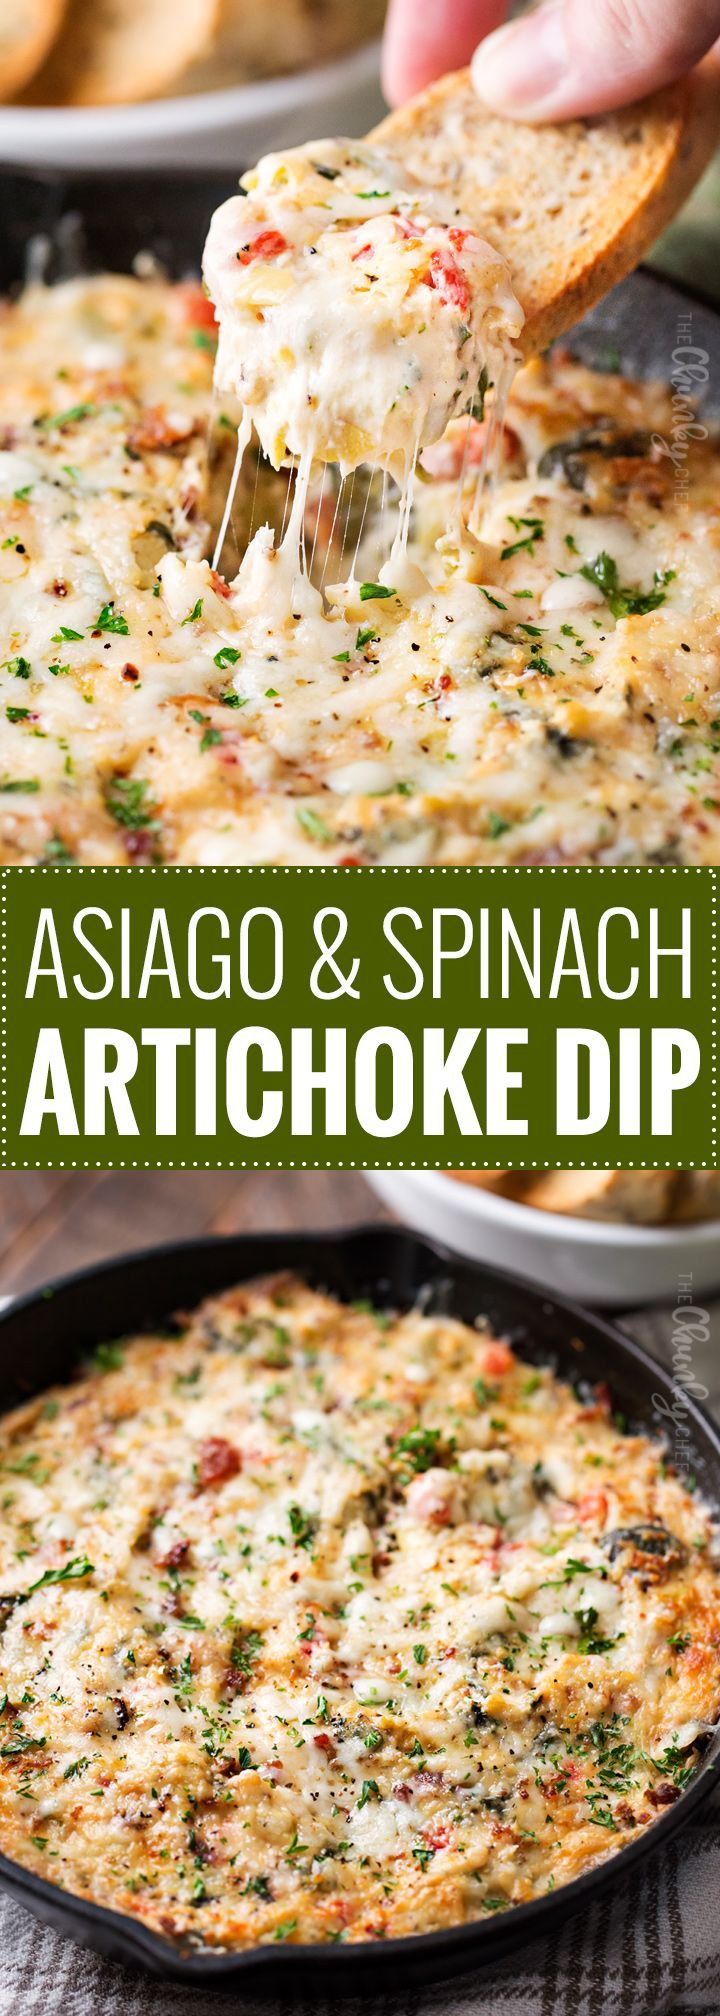 Asiago and Spinach Artichoke Dip | A classic party dish, this baked spinach and artichoke dip is made from scratch, using fresh ingredients, and still super easy to throw together!